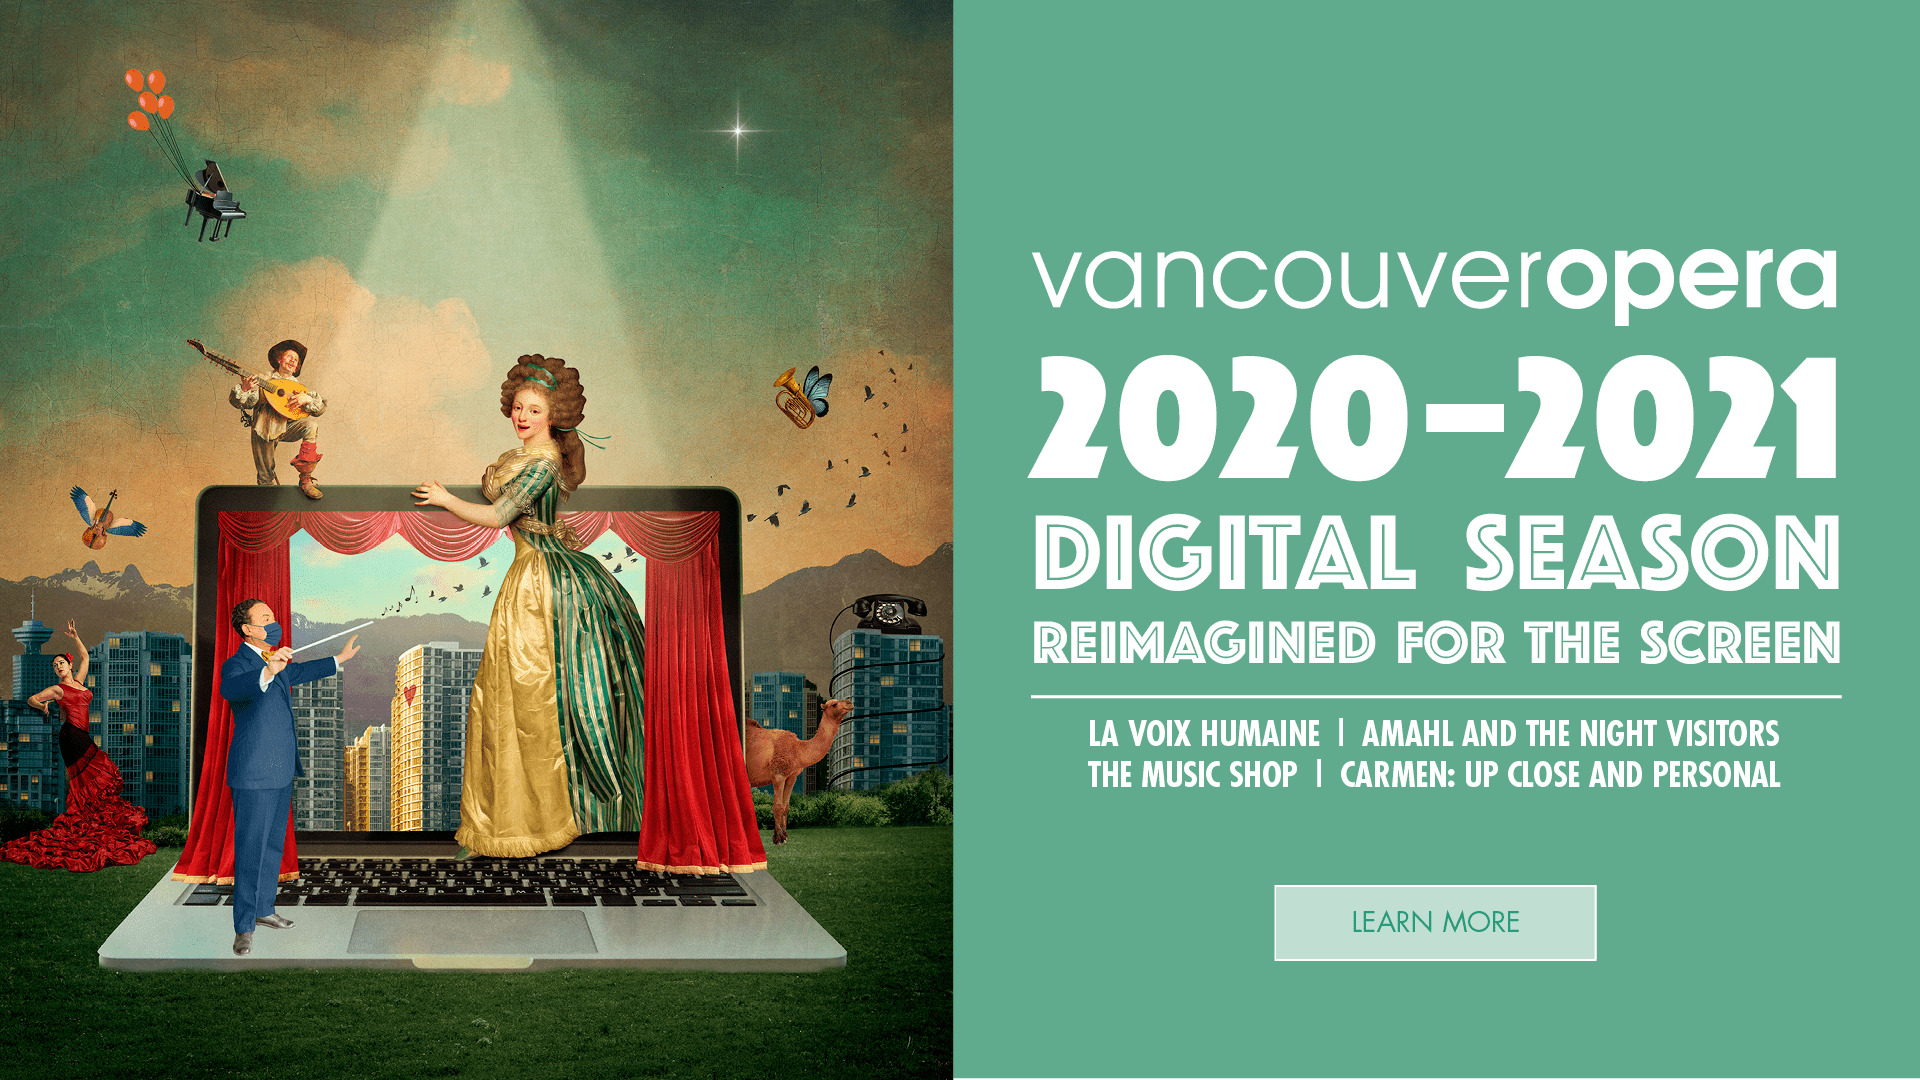 2020-2021 Digital Season